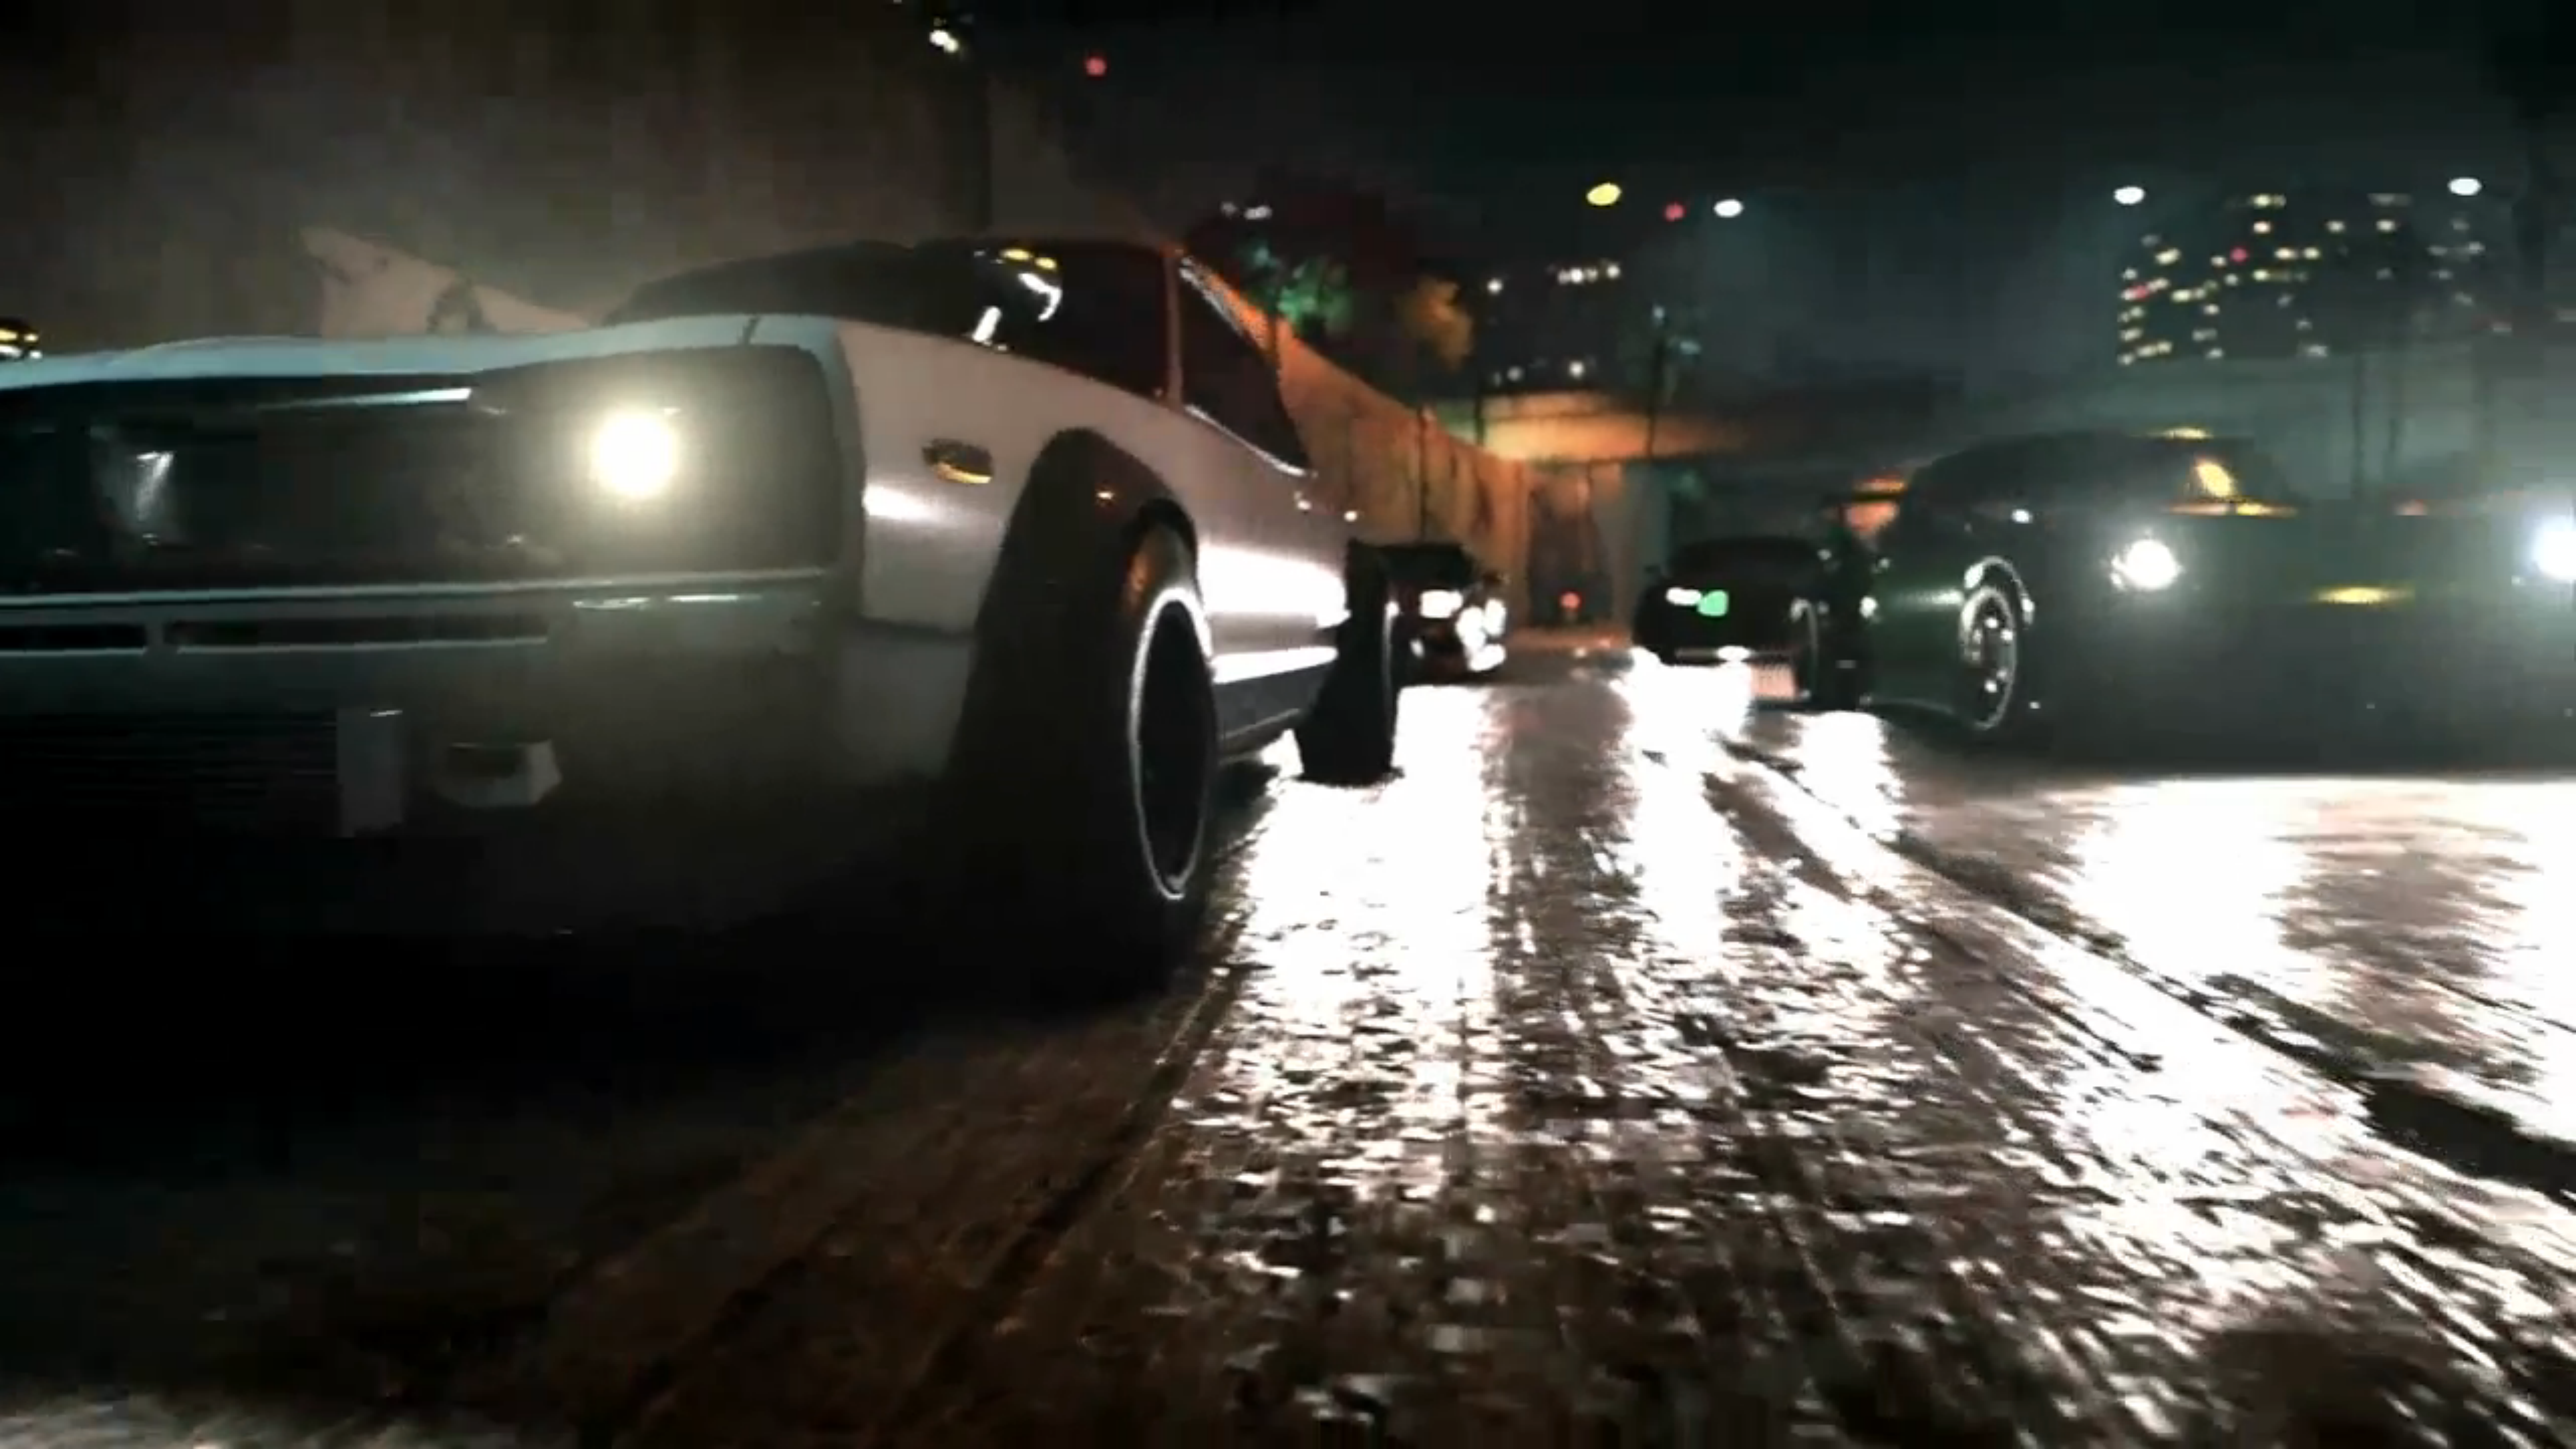 Fastest Car In The World 2015 >> Need for Speed Gameplay Interview from E3 2015